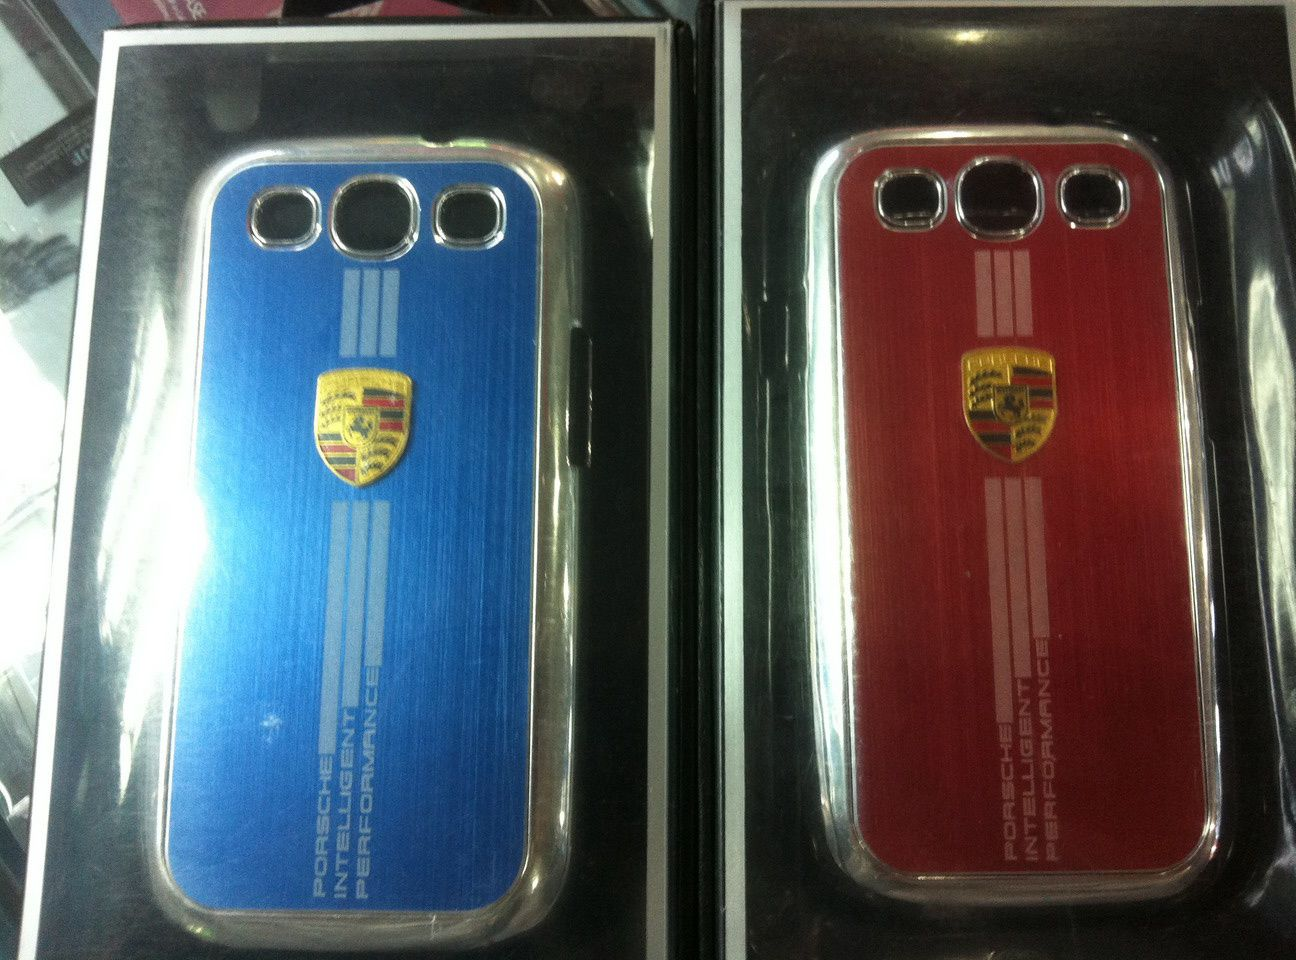 coque en aluminium ferrari bmw porsche pour samsung s3 i9300 accessoires p riph rique de jeux. Black Bedroom Furniture Sets. Home Design Ideas